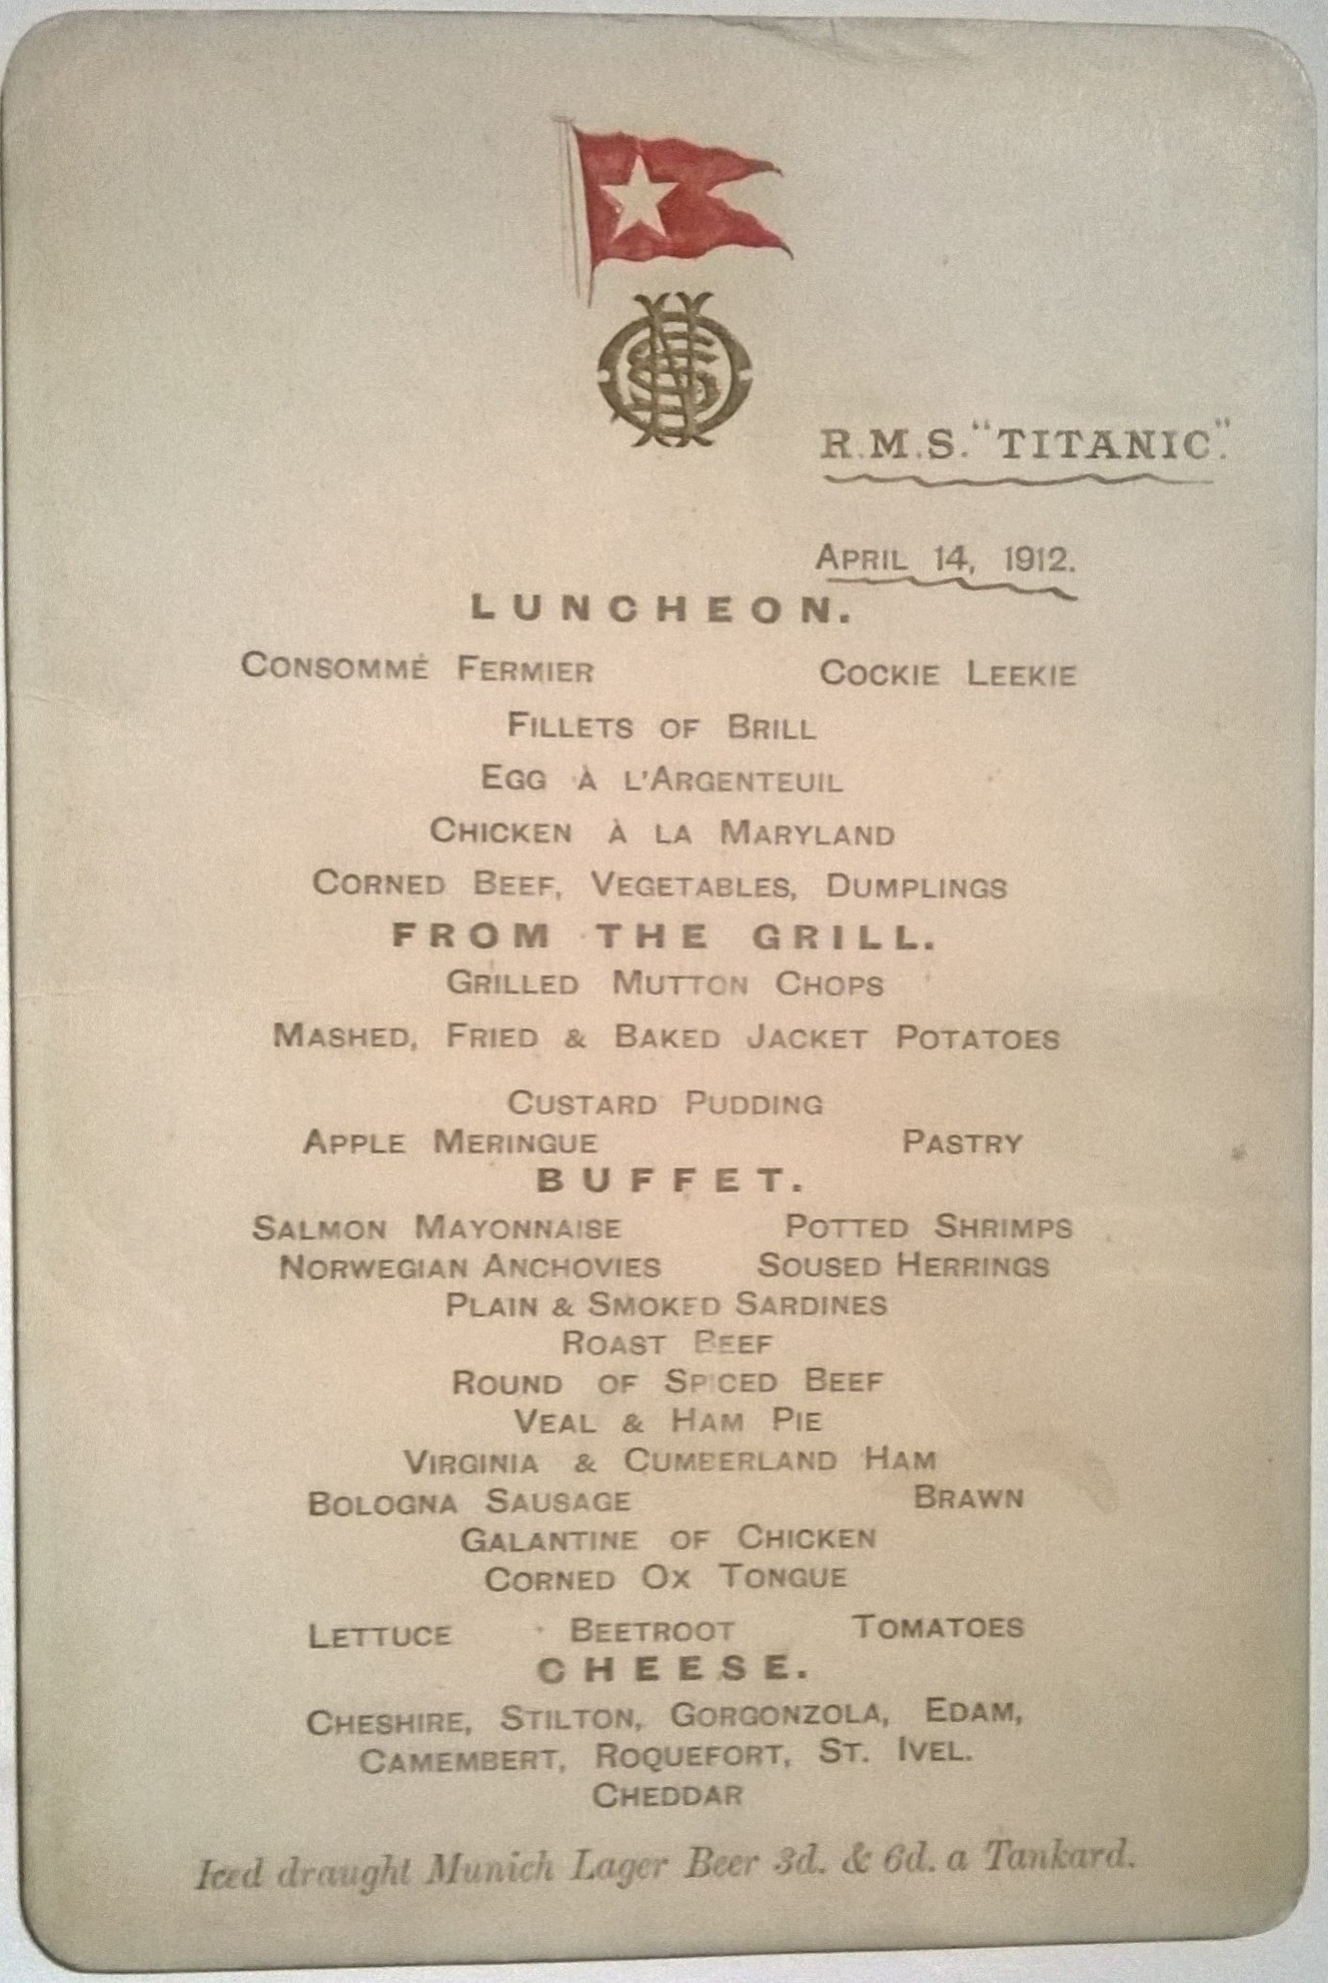 Titanic Luncheon Menu